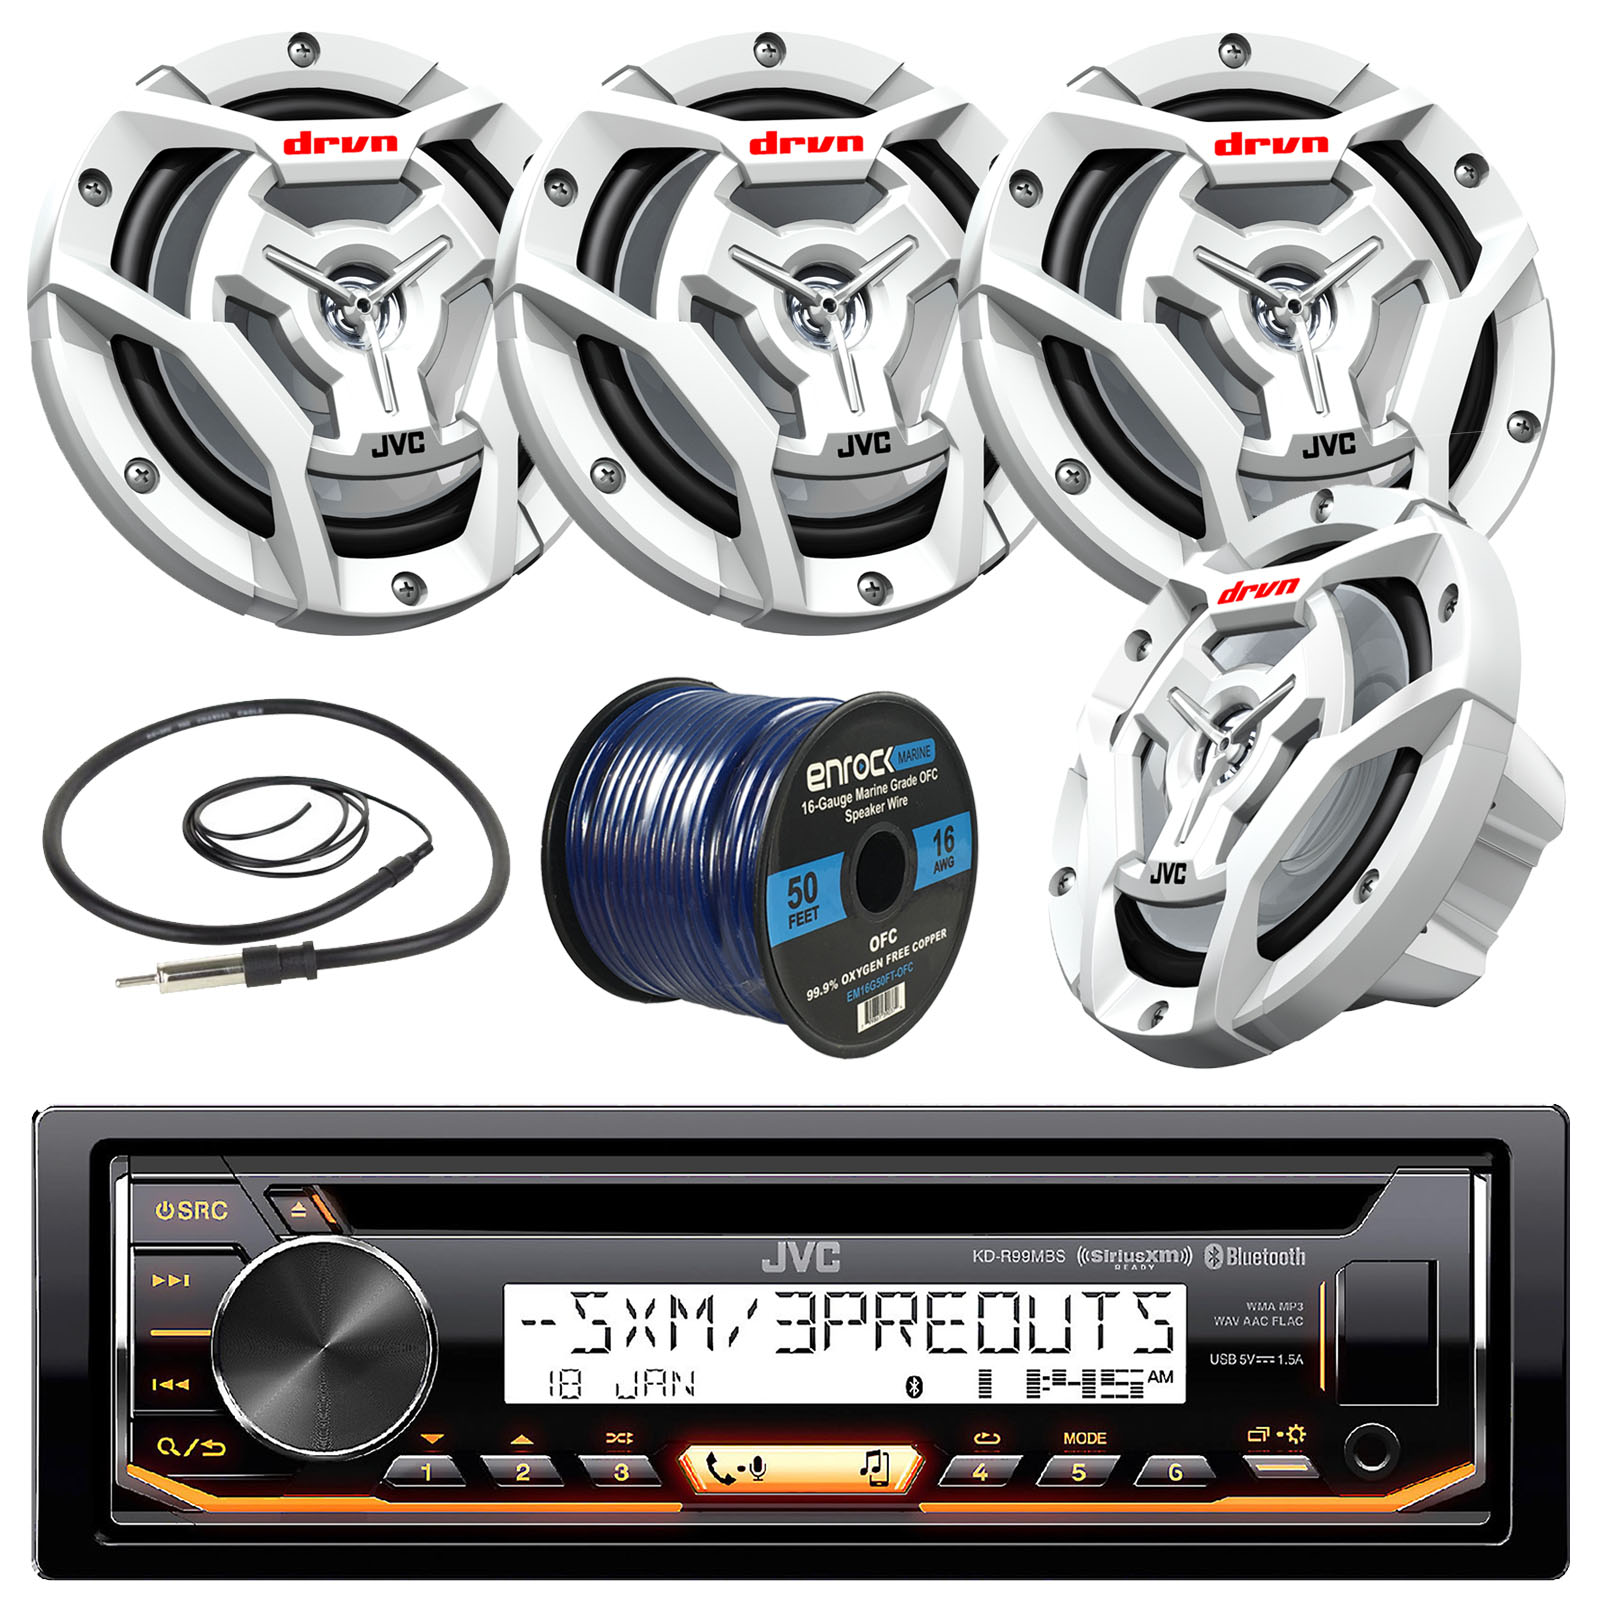 "JVC KD-R99MBS Marine Boat Yacht Radio Stereo CD Player Receiver Bundle Combo With 4x JVC CS-DR6201MW 100-Watt 6.5"" 2-Way Coaxial Speakers + Enrock Radio Antenna + 50 Foot 16g Speaker Wire"